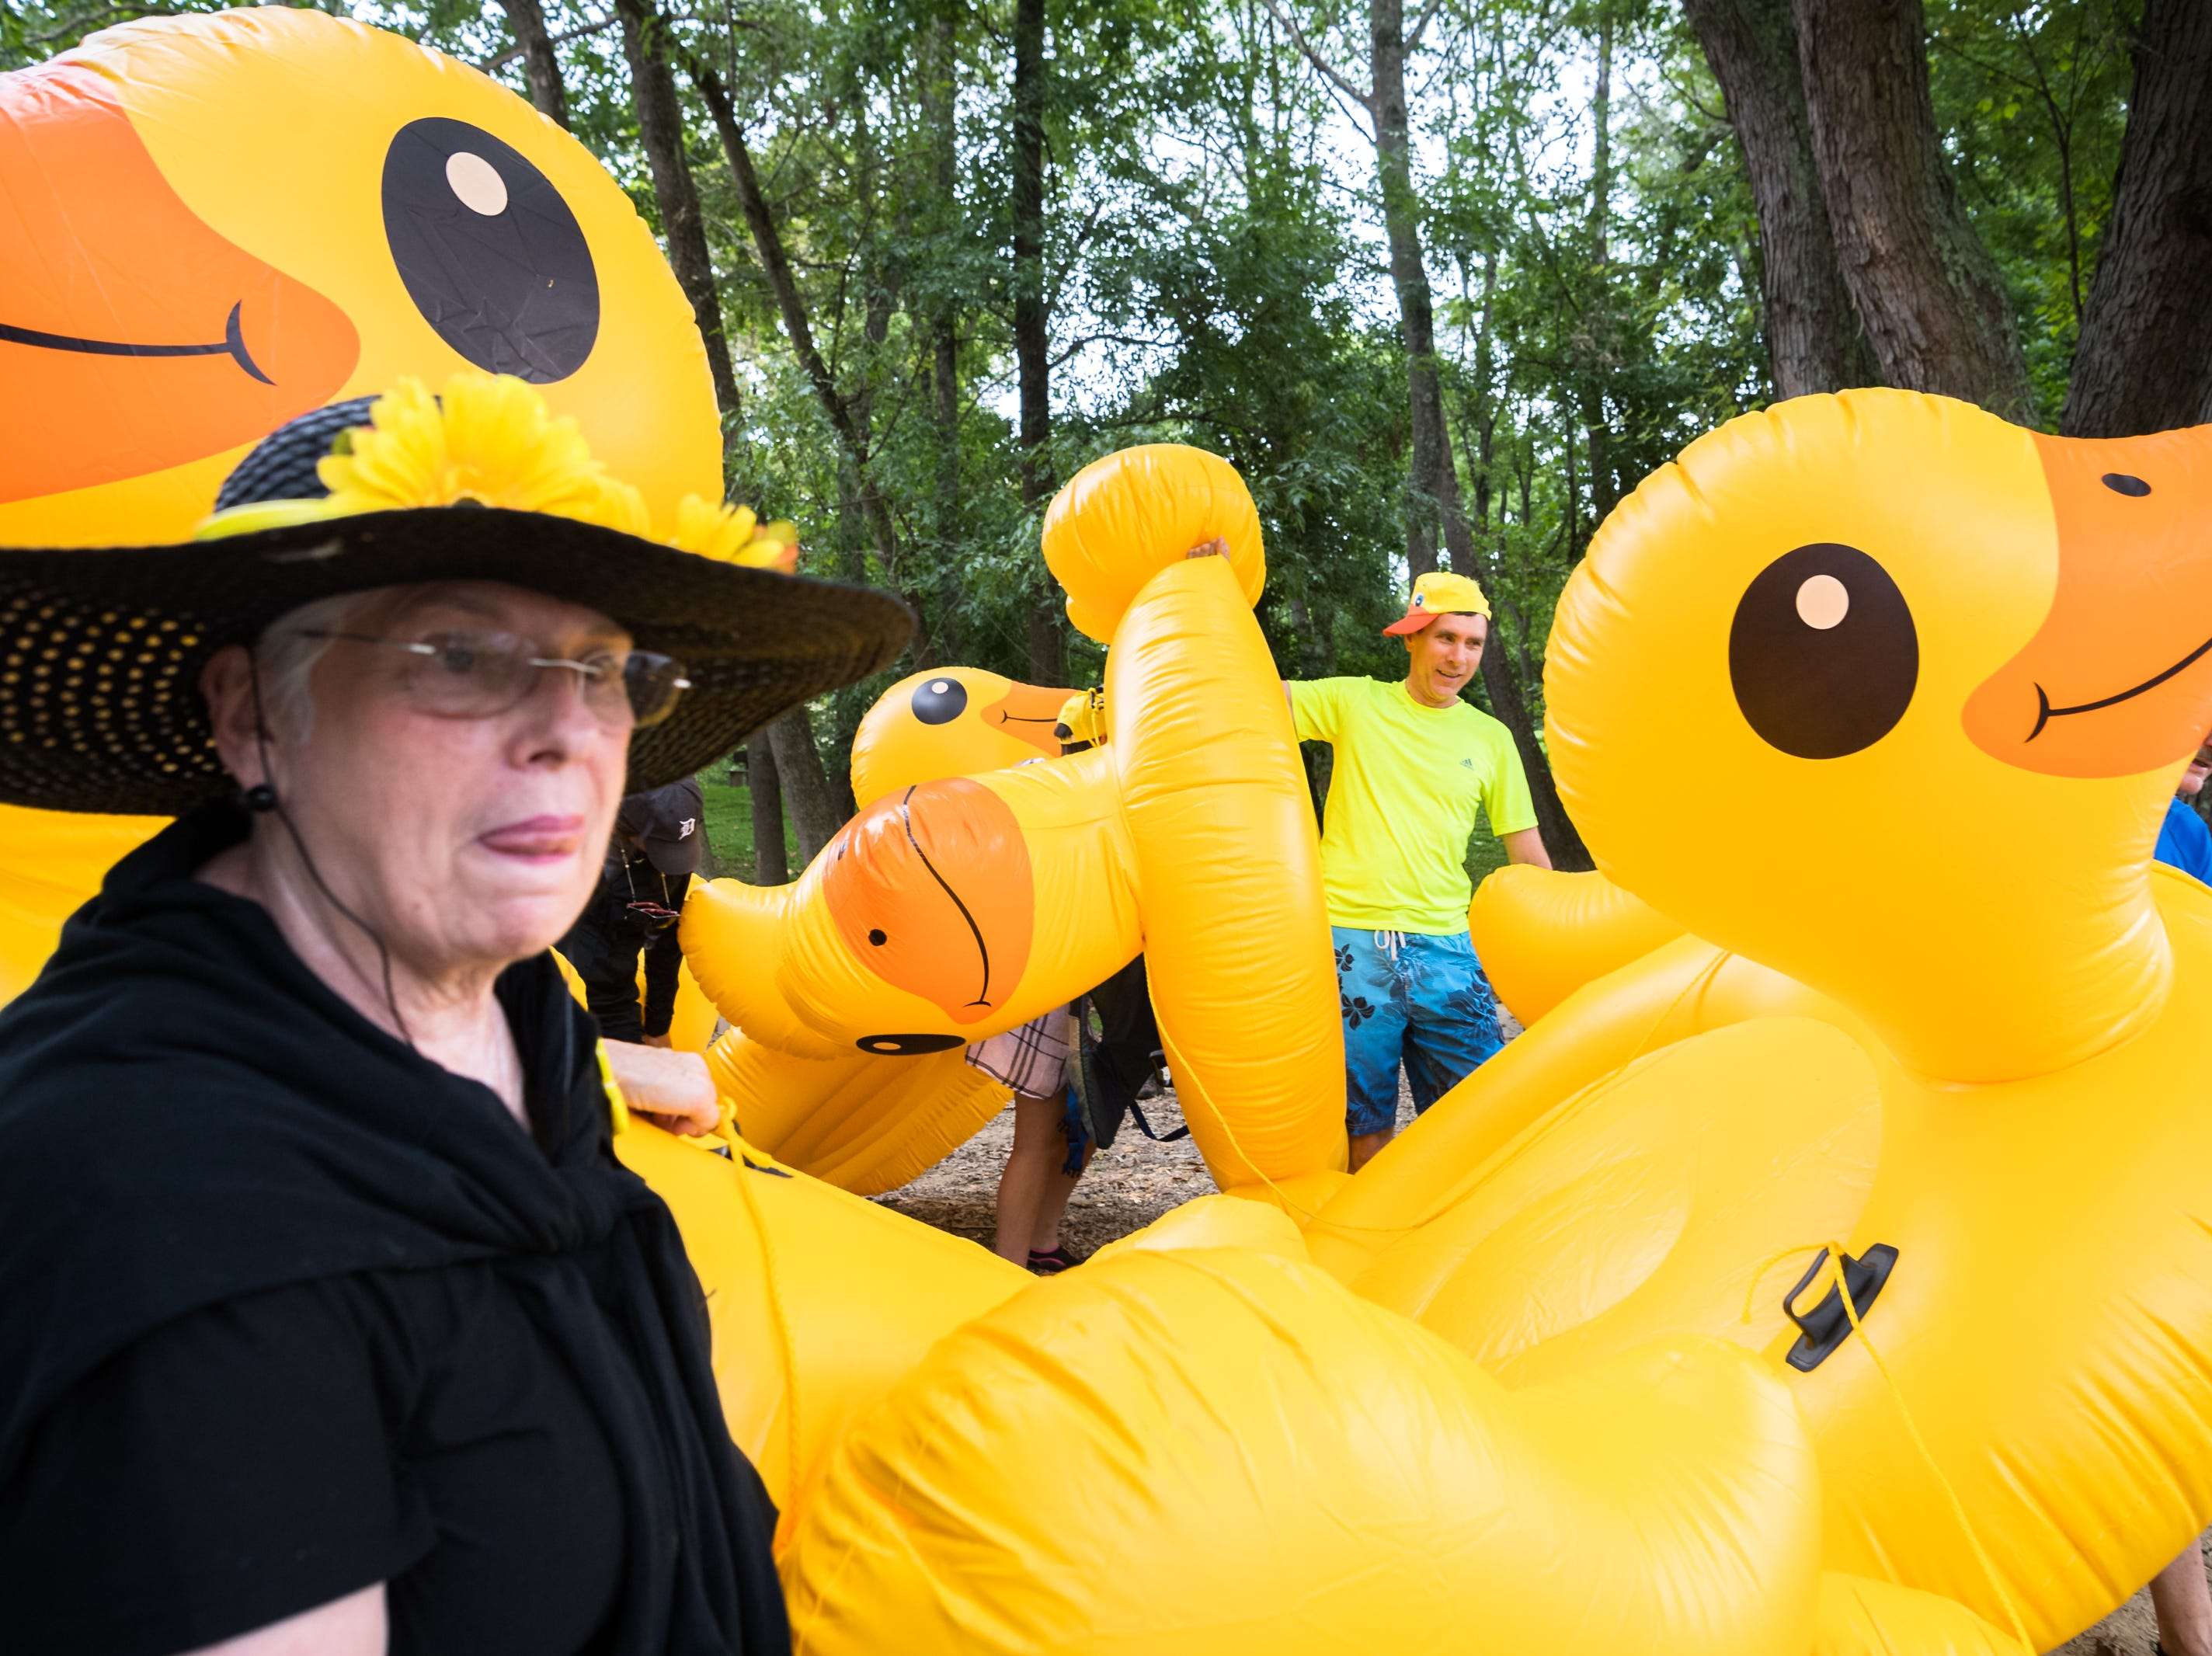 Team members from the Just Ducky Anything that Floats parade team, wait to put in to the French Broad River at Hominy Creek River Park, Saturday, August 18, 2018. The parade ended at New Belgium Brewery where RiverLink's RiverFest took place.